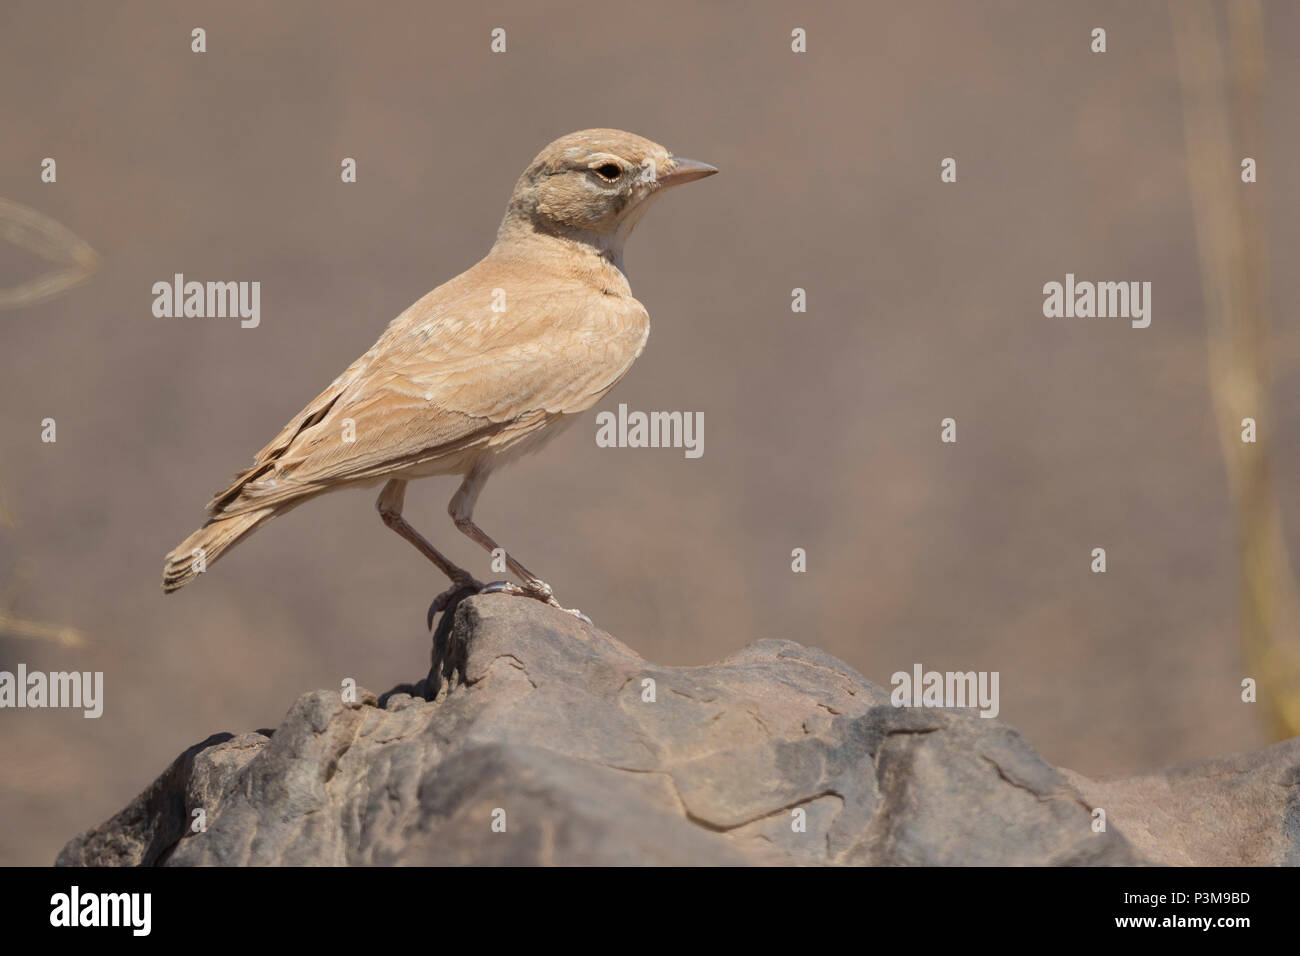 Lbar-tailed Lark (Ammomanes cinctura arenicolor), adult standing on a stone - Stock Image